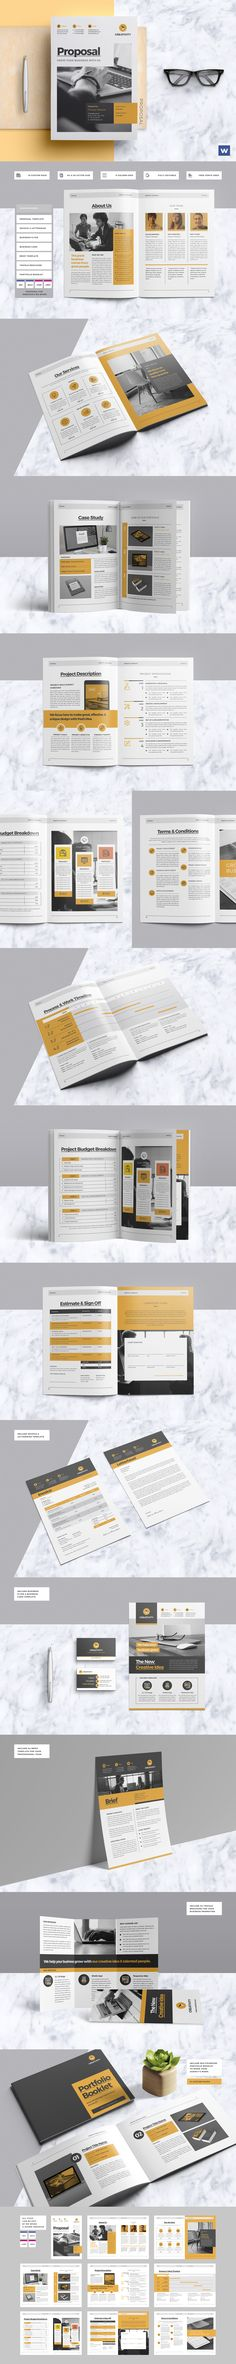 Proposal Creative, Colors and Texts - interior design proposal template